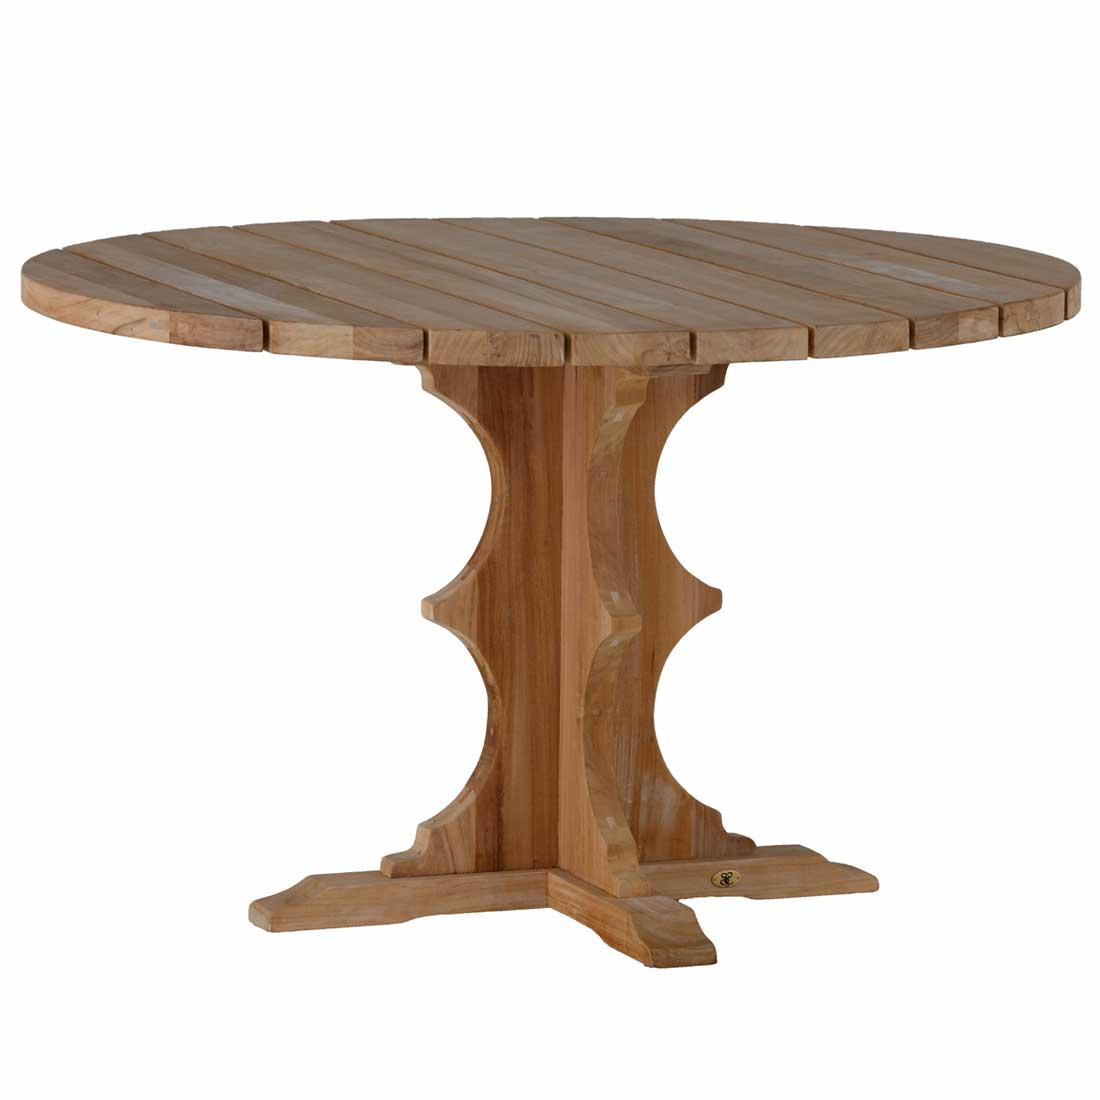 French teak round dining table summer classics for French round dining table